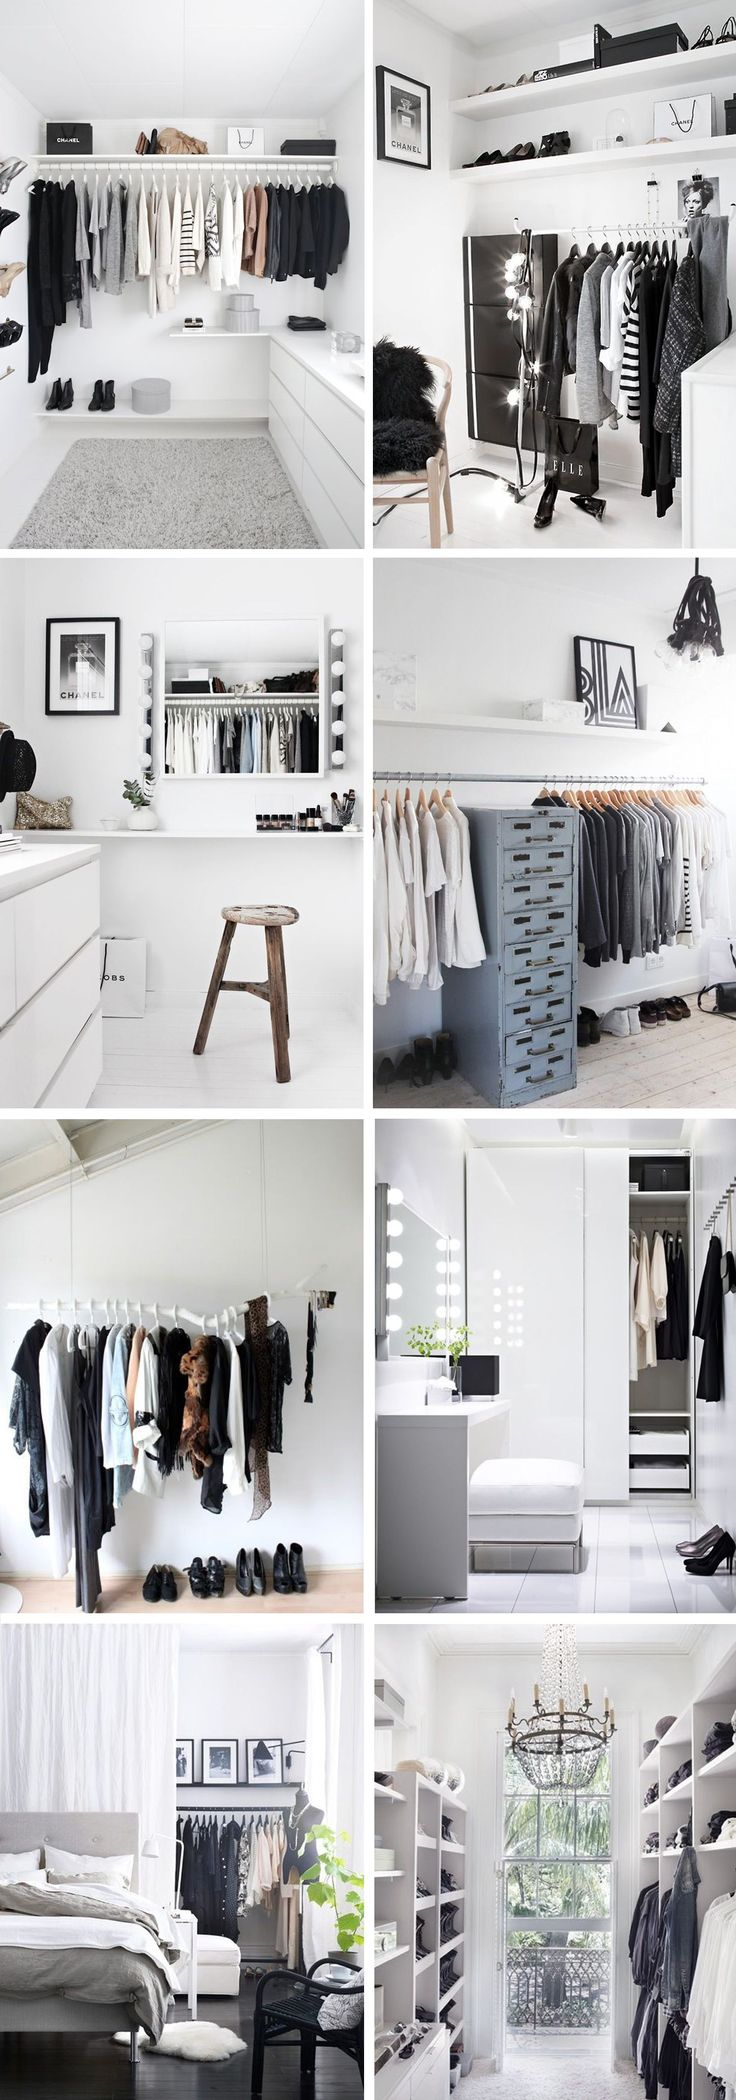 Wardrobe / closet inspiration - perfect for my dressing room ideas